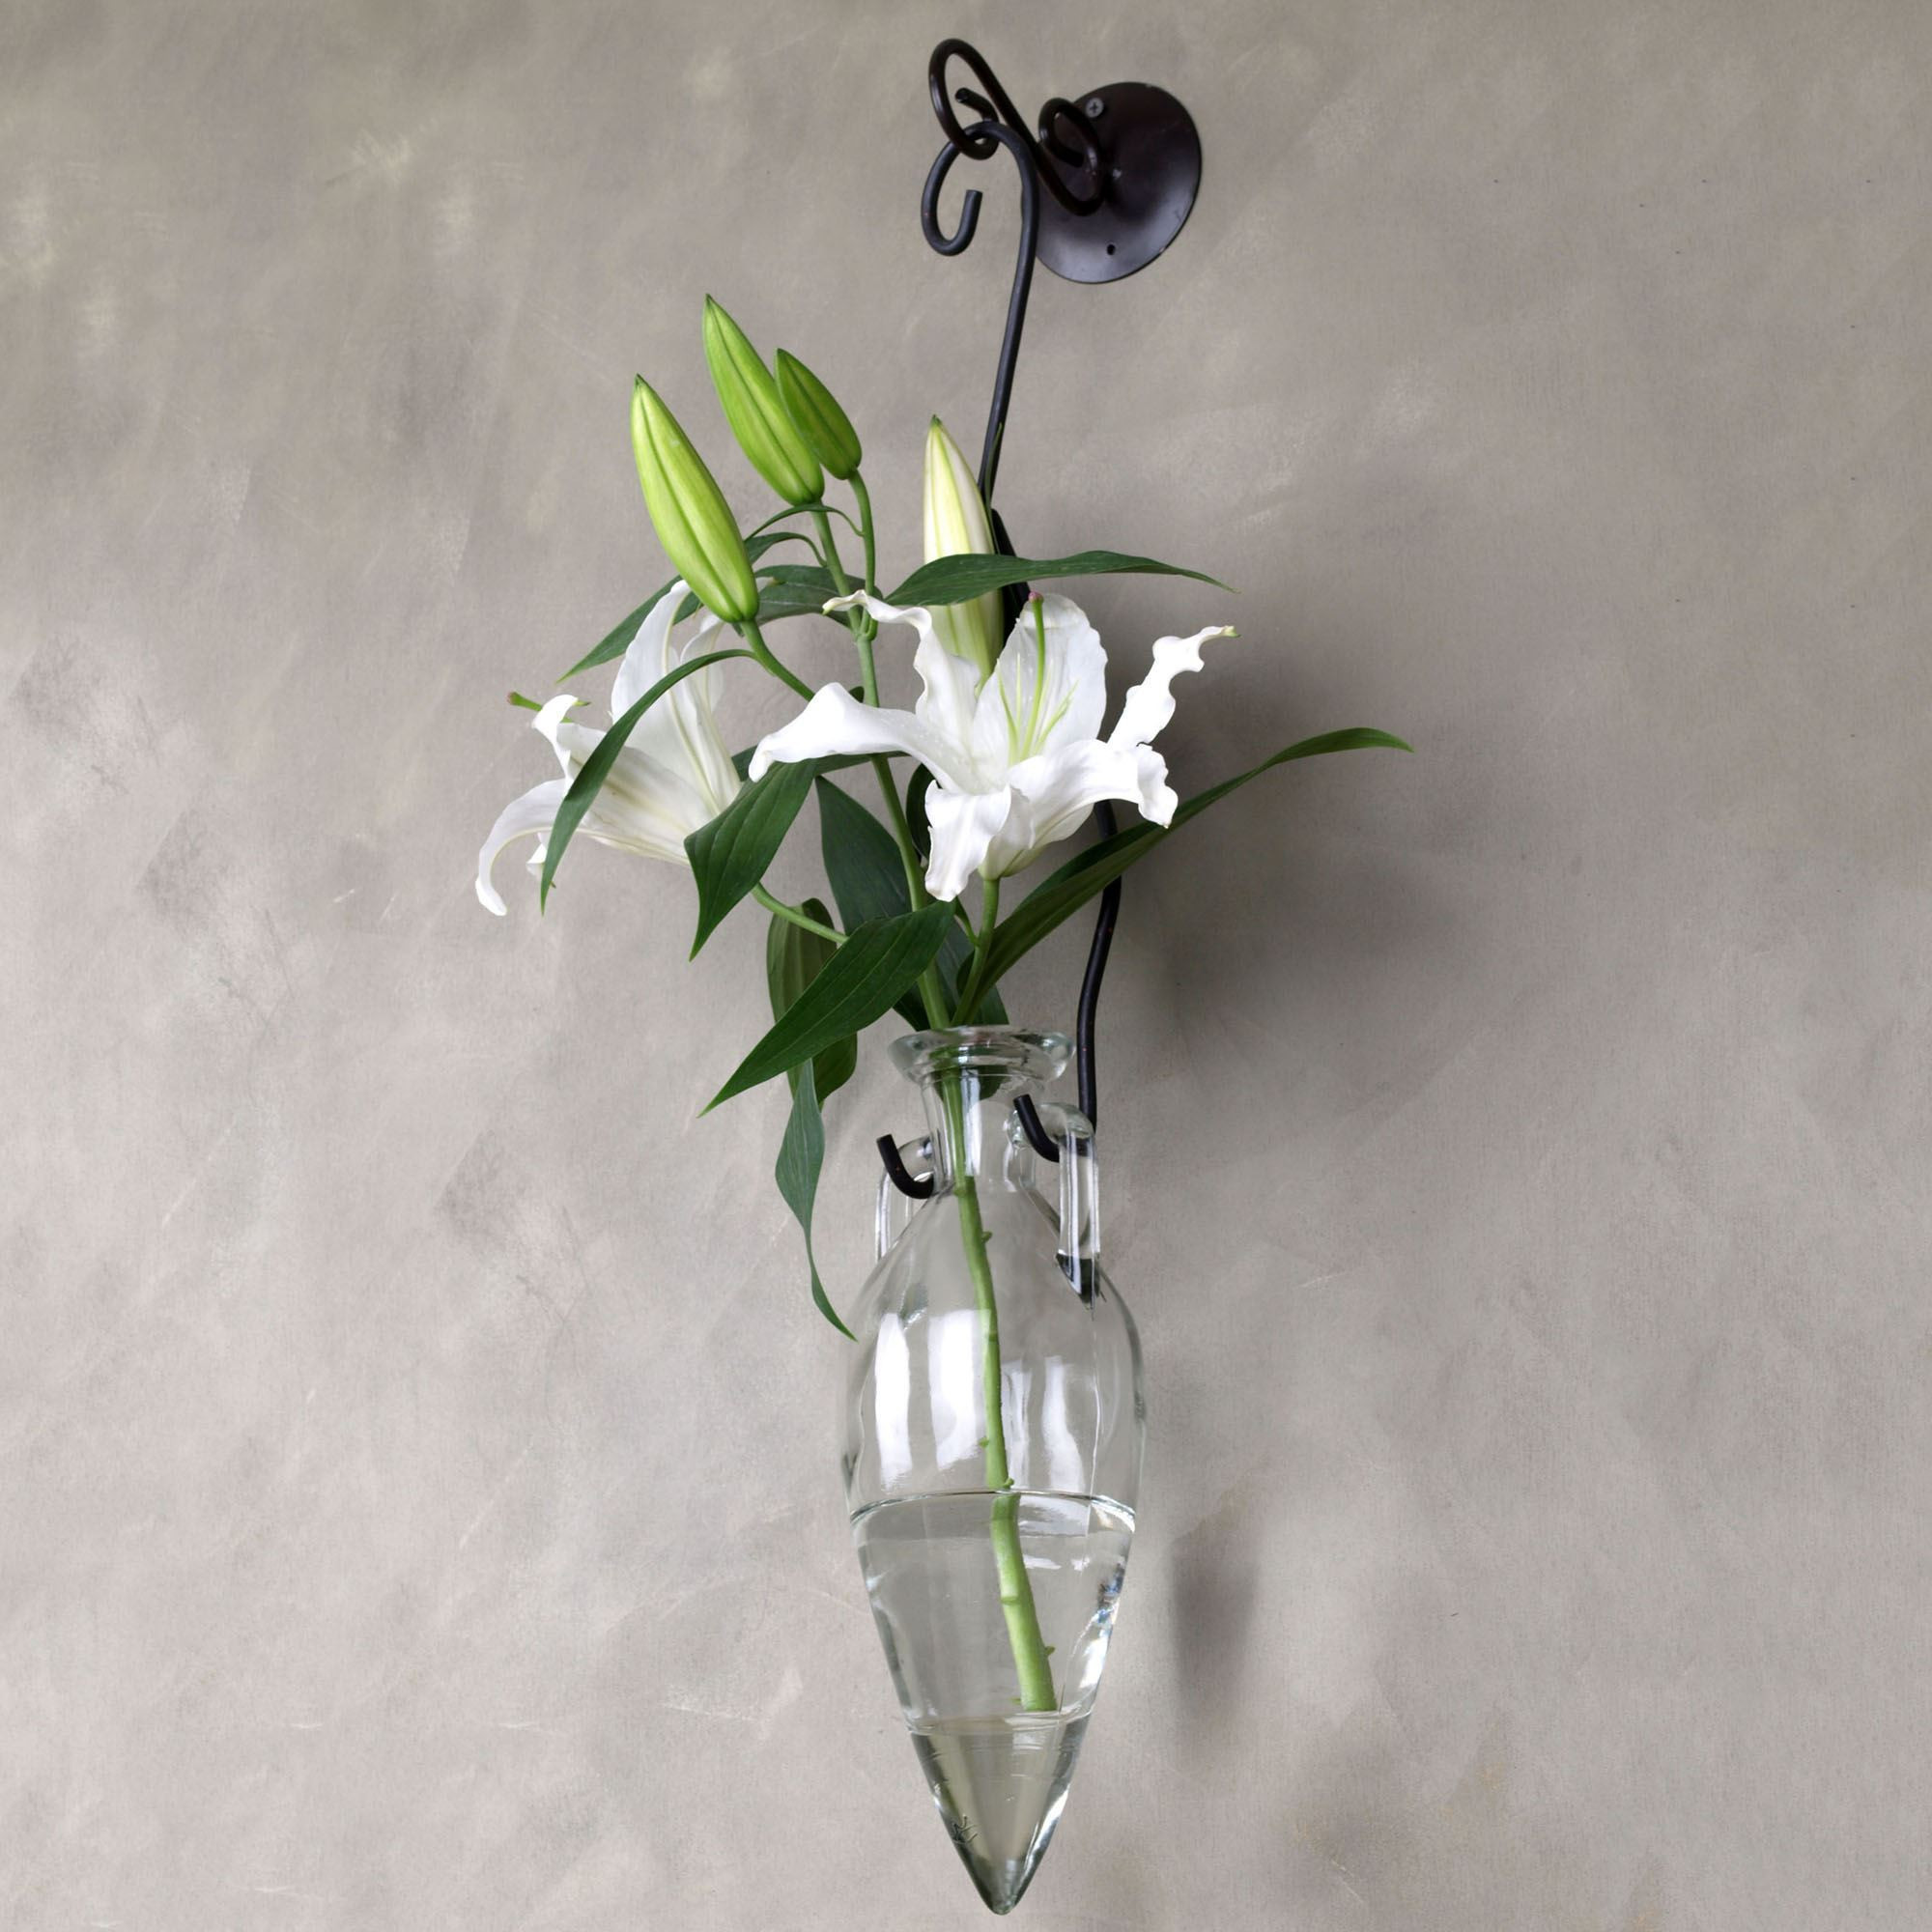 off white vase of image of metal wall vase vases artificial plants collection with regard to metal wall vase pictures h vases wall hanging flower vase newspaper i 0d scheme wall scheme